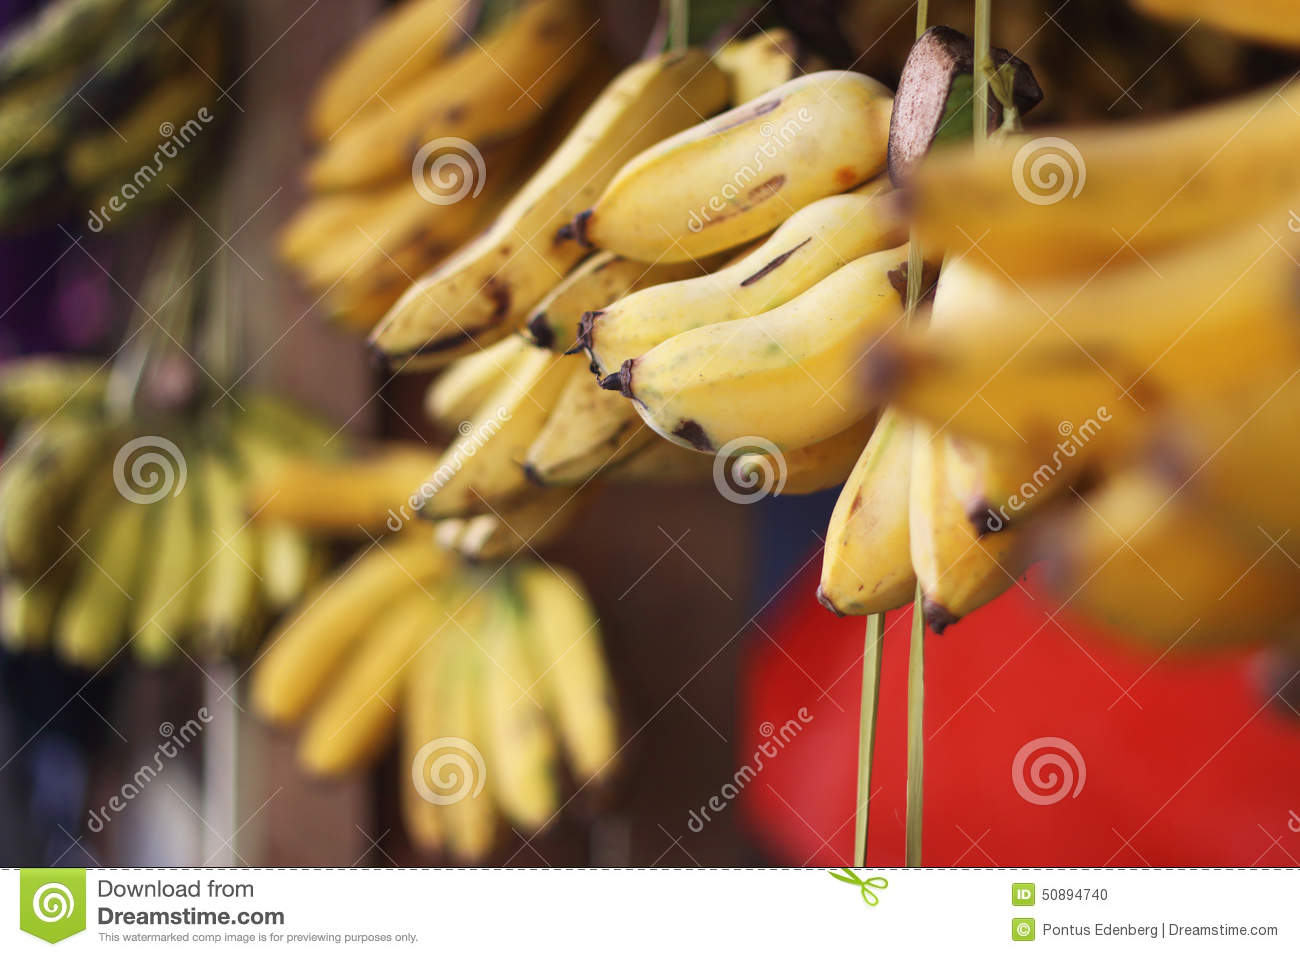 Bananas in the market